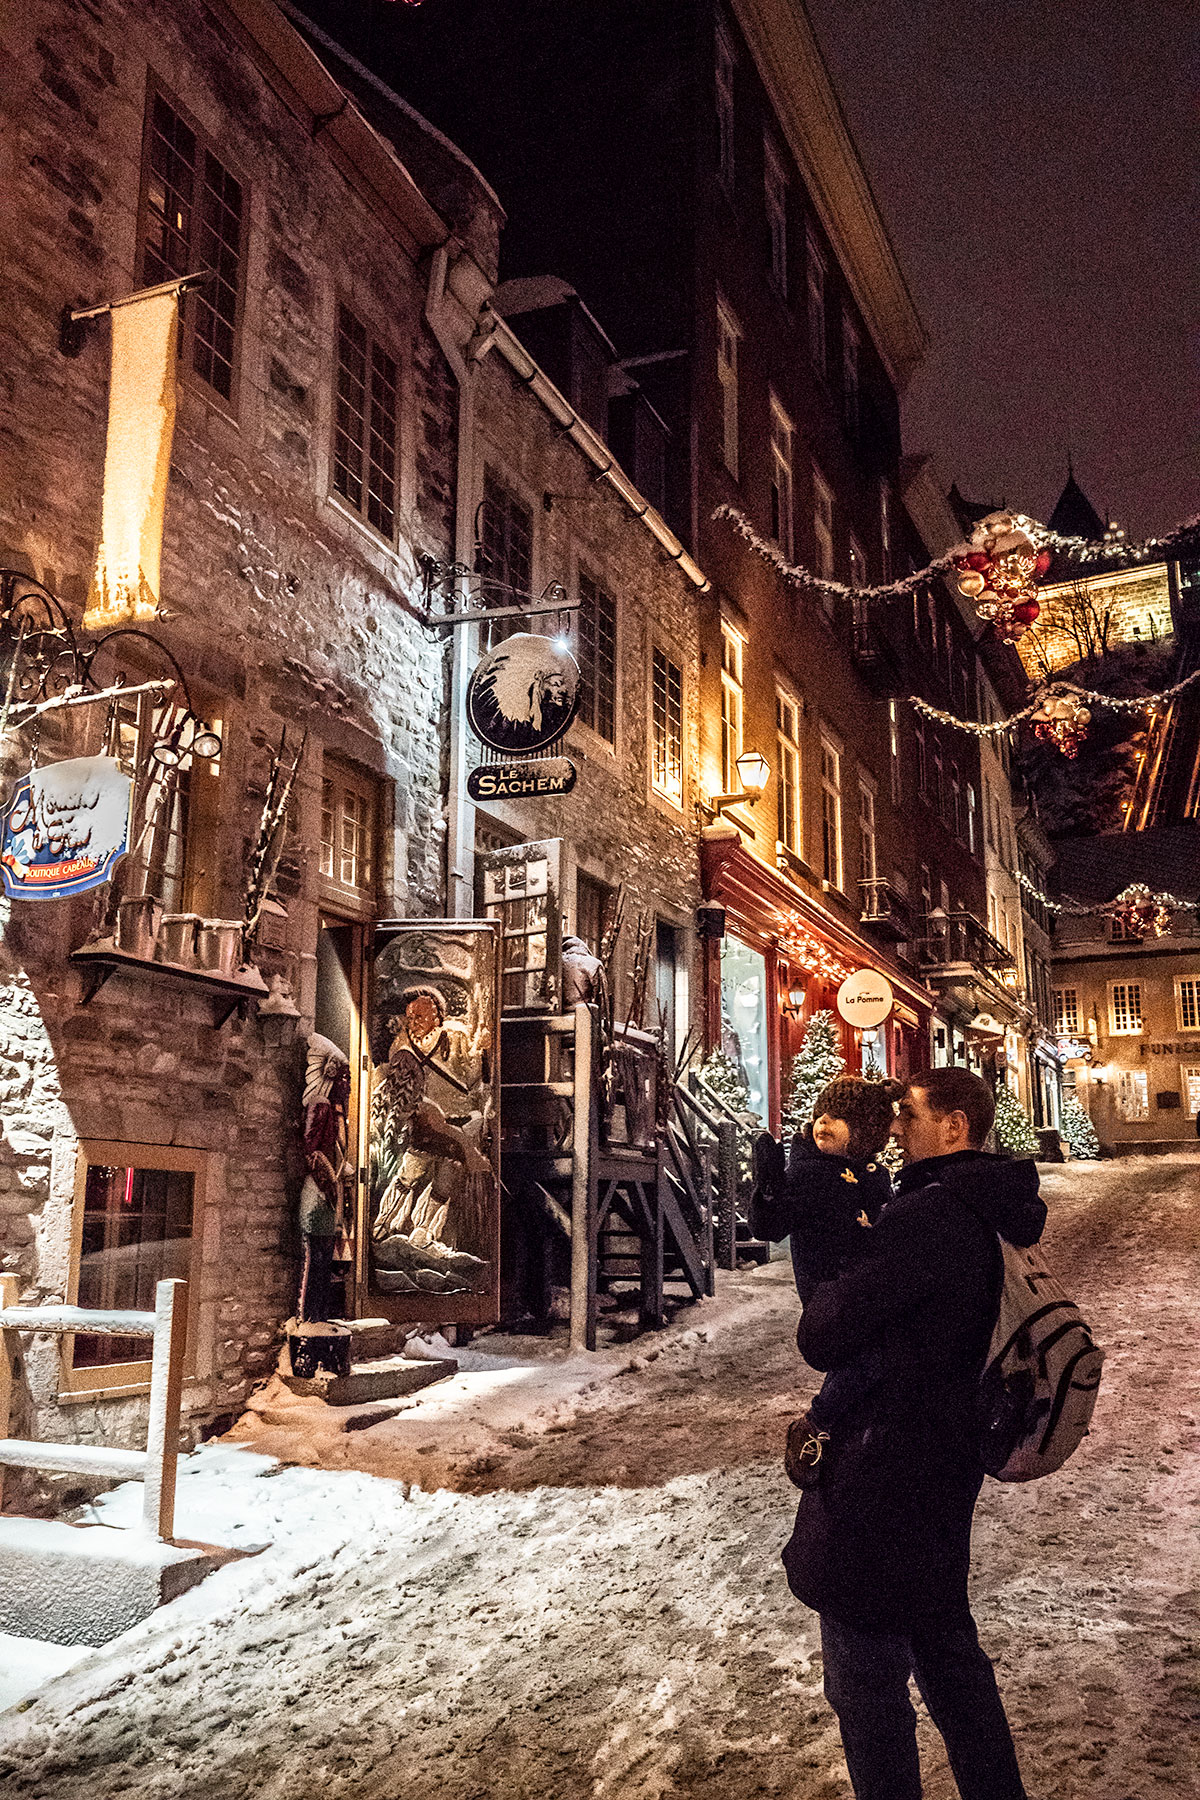 Strolling-Through-Quebec-City-at-Christmastime